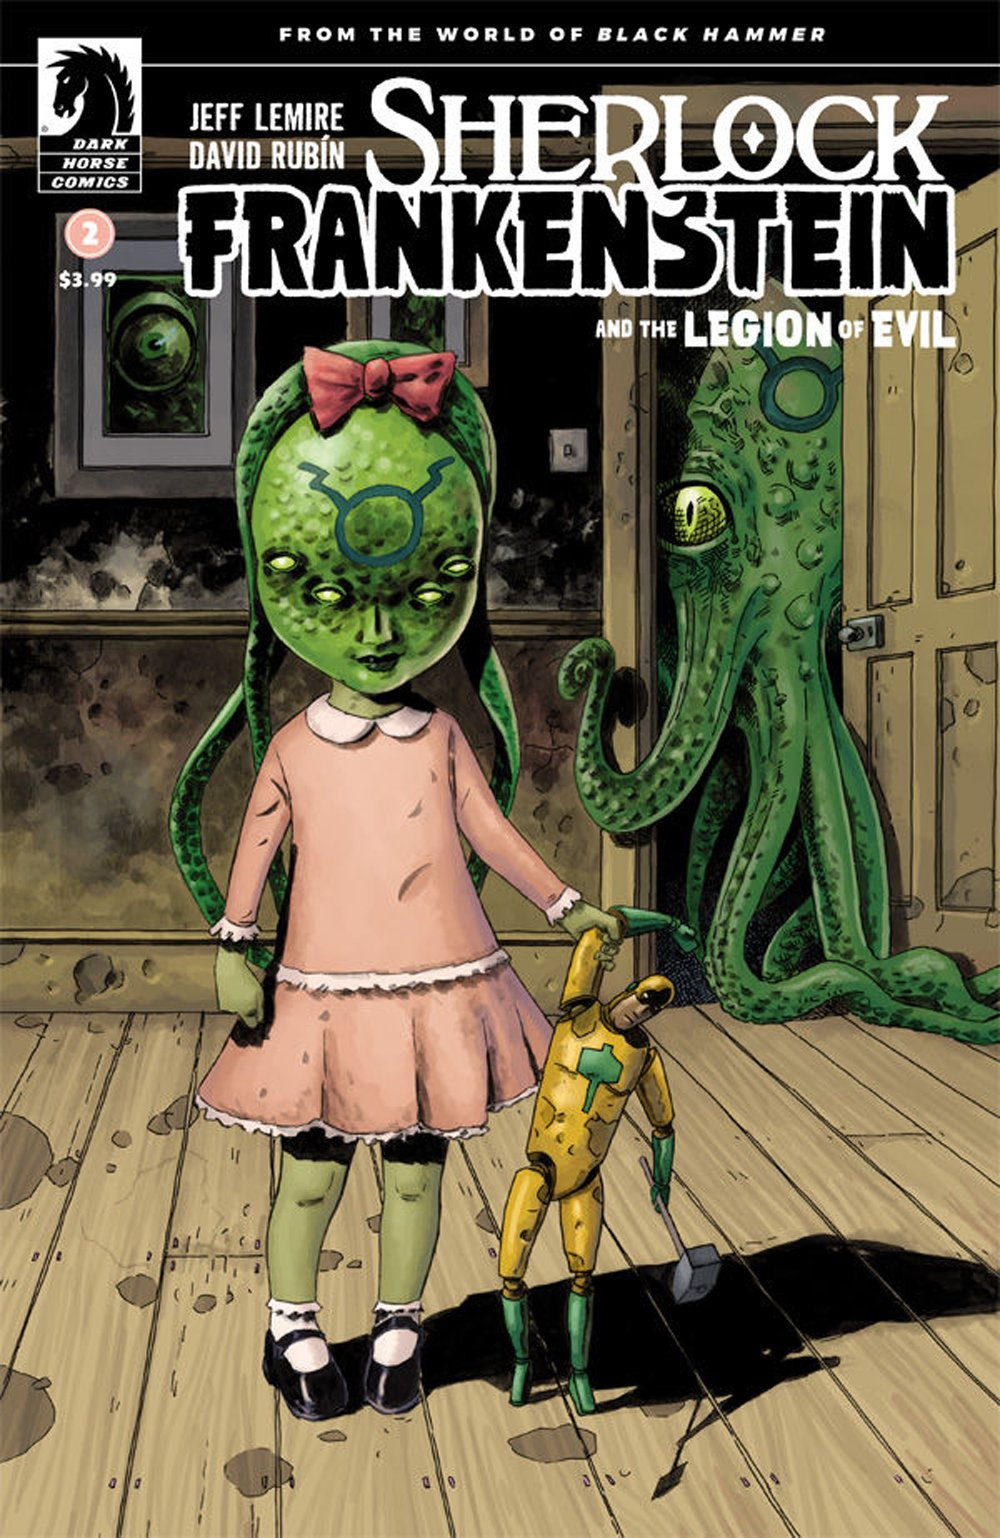 Read Online Sherlock Frankenstein and the Legion of Evil (Issue #2 -Cover B by Dean Ormston) PDF